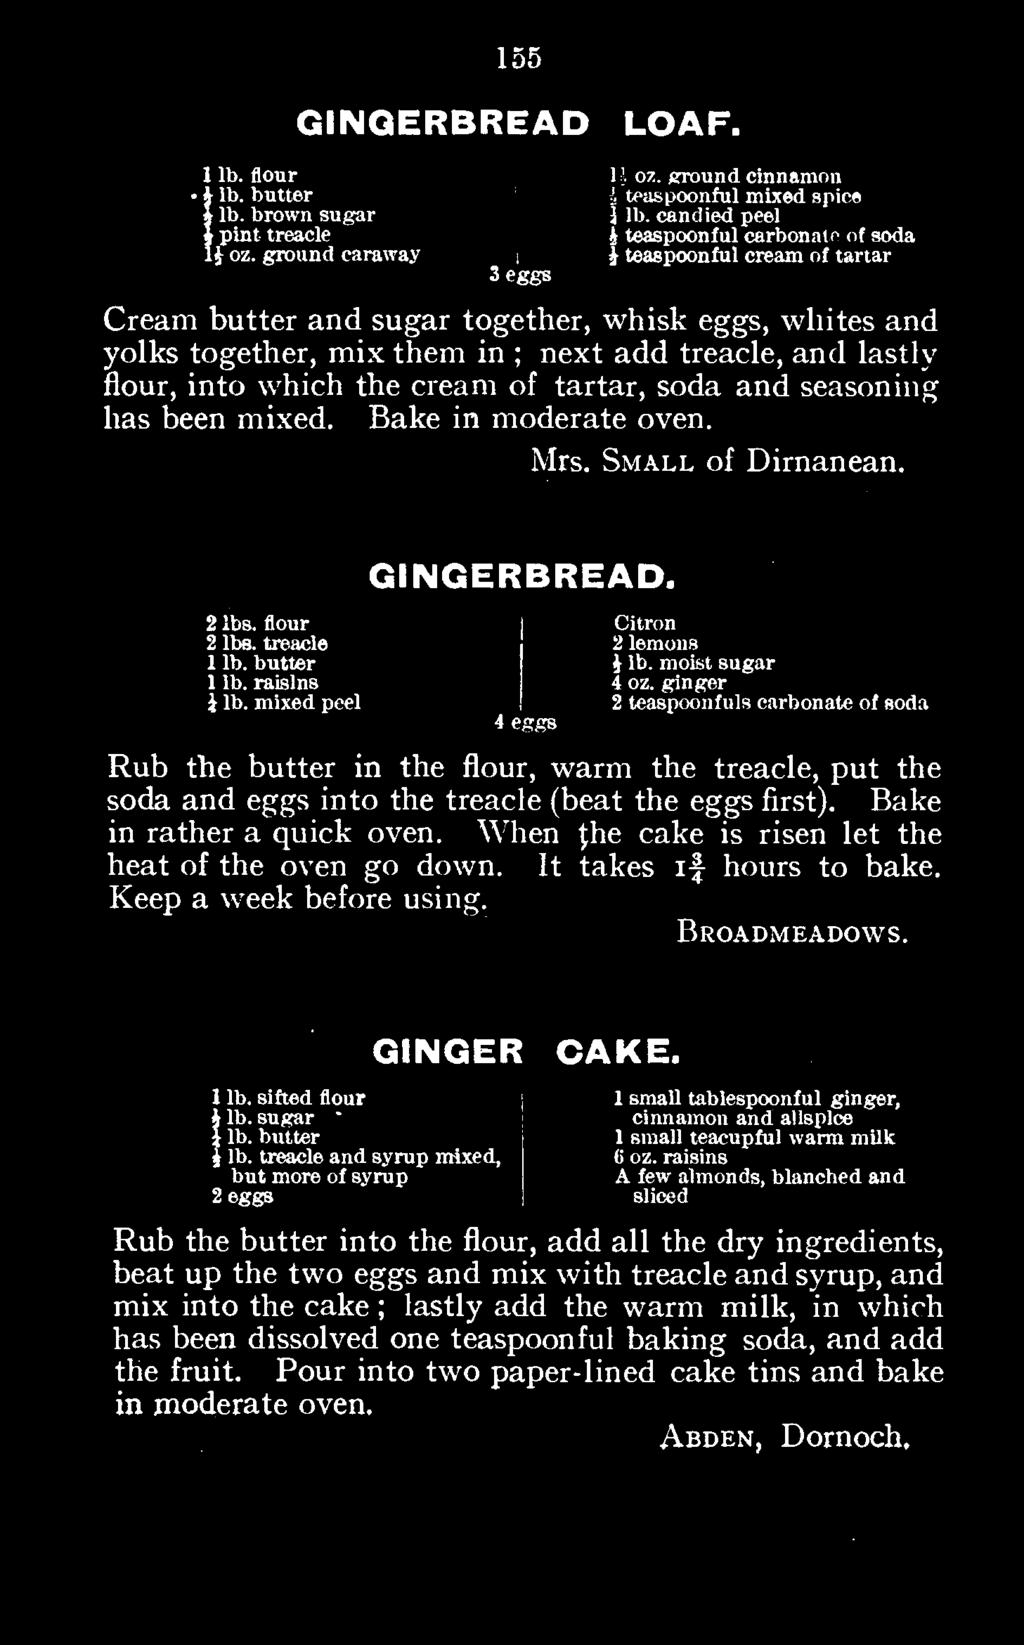 Bake in rather a quick oven. When (he cake is risen let the heat of the oven go down. It takes if hours to bake. Keep a week before using. Broadmeadows. GINGER CAKE.